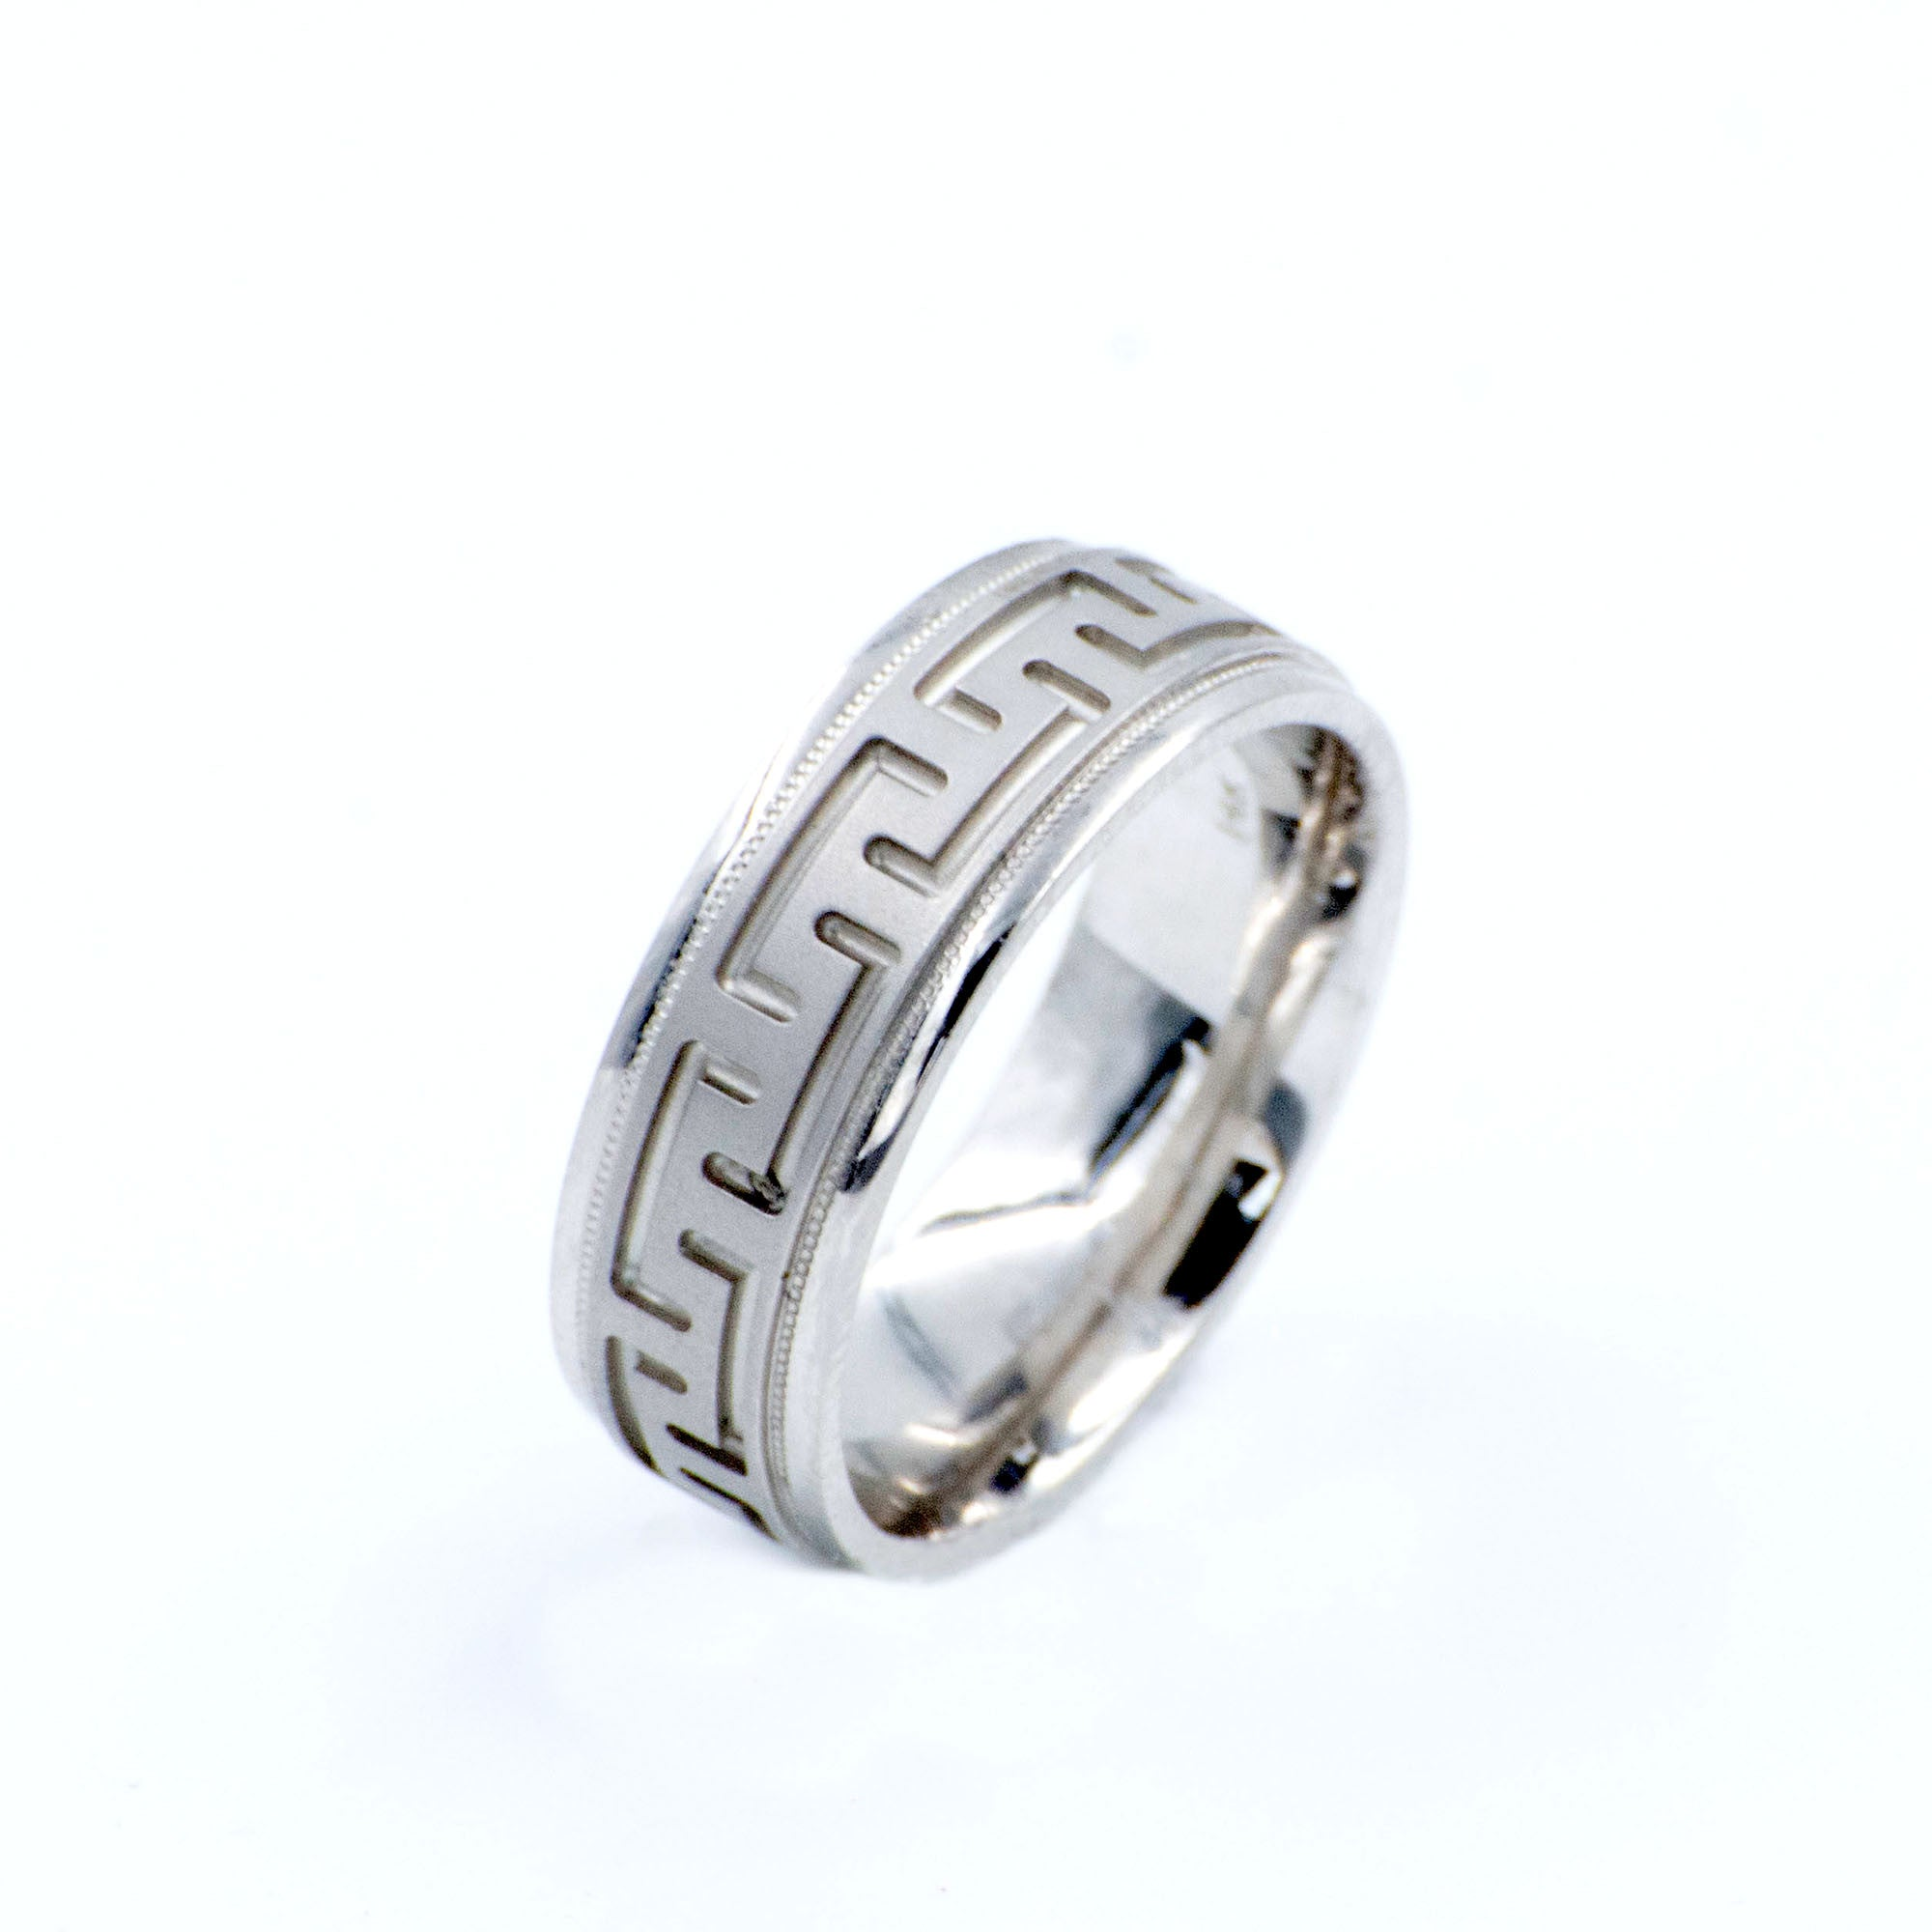 Men's  14k White Gold Wedding Band Eternity Style Greek Key Pattern